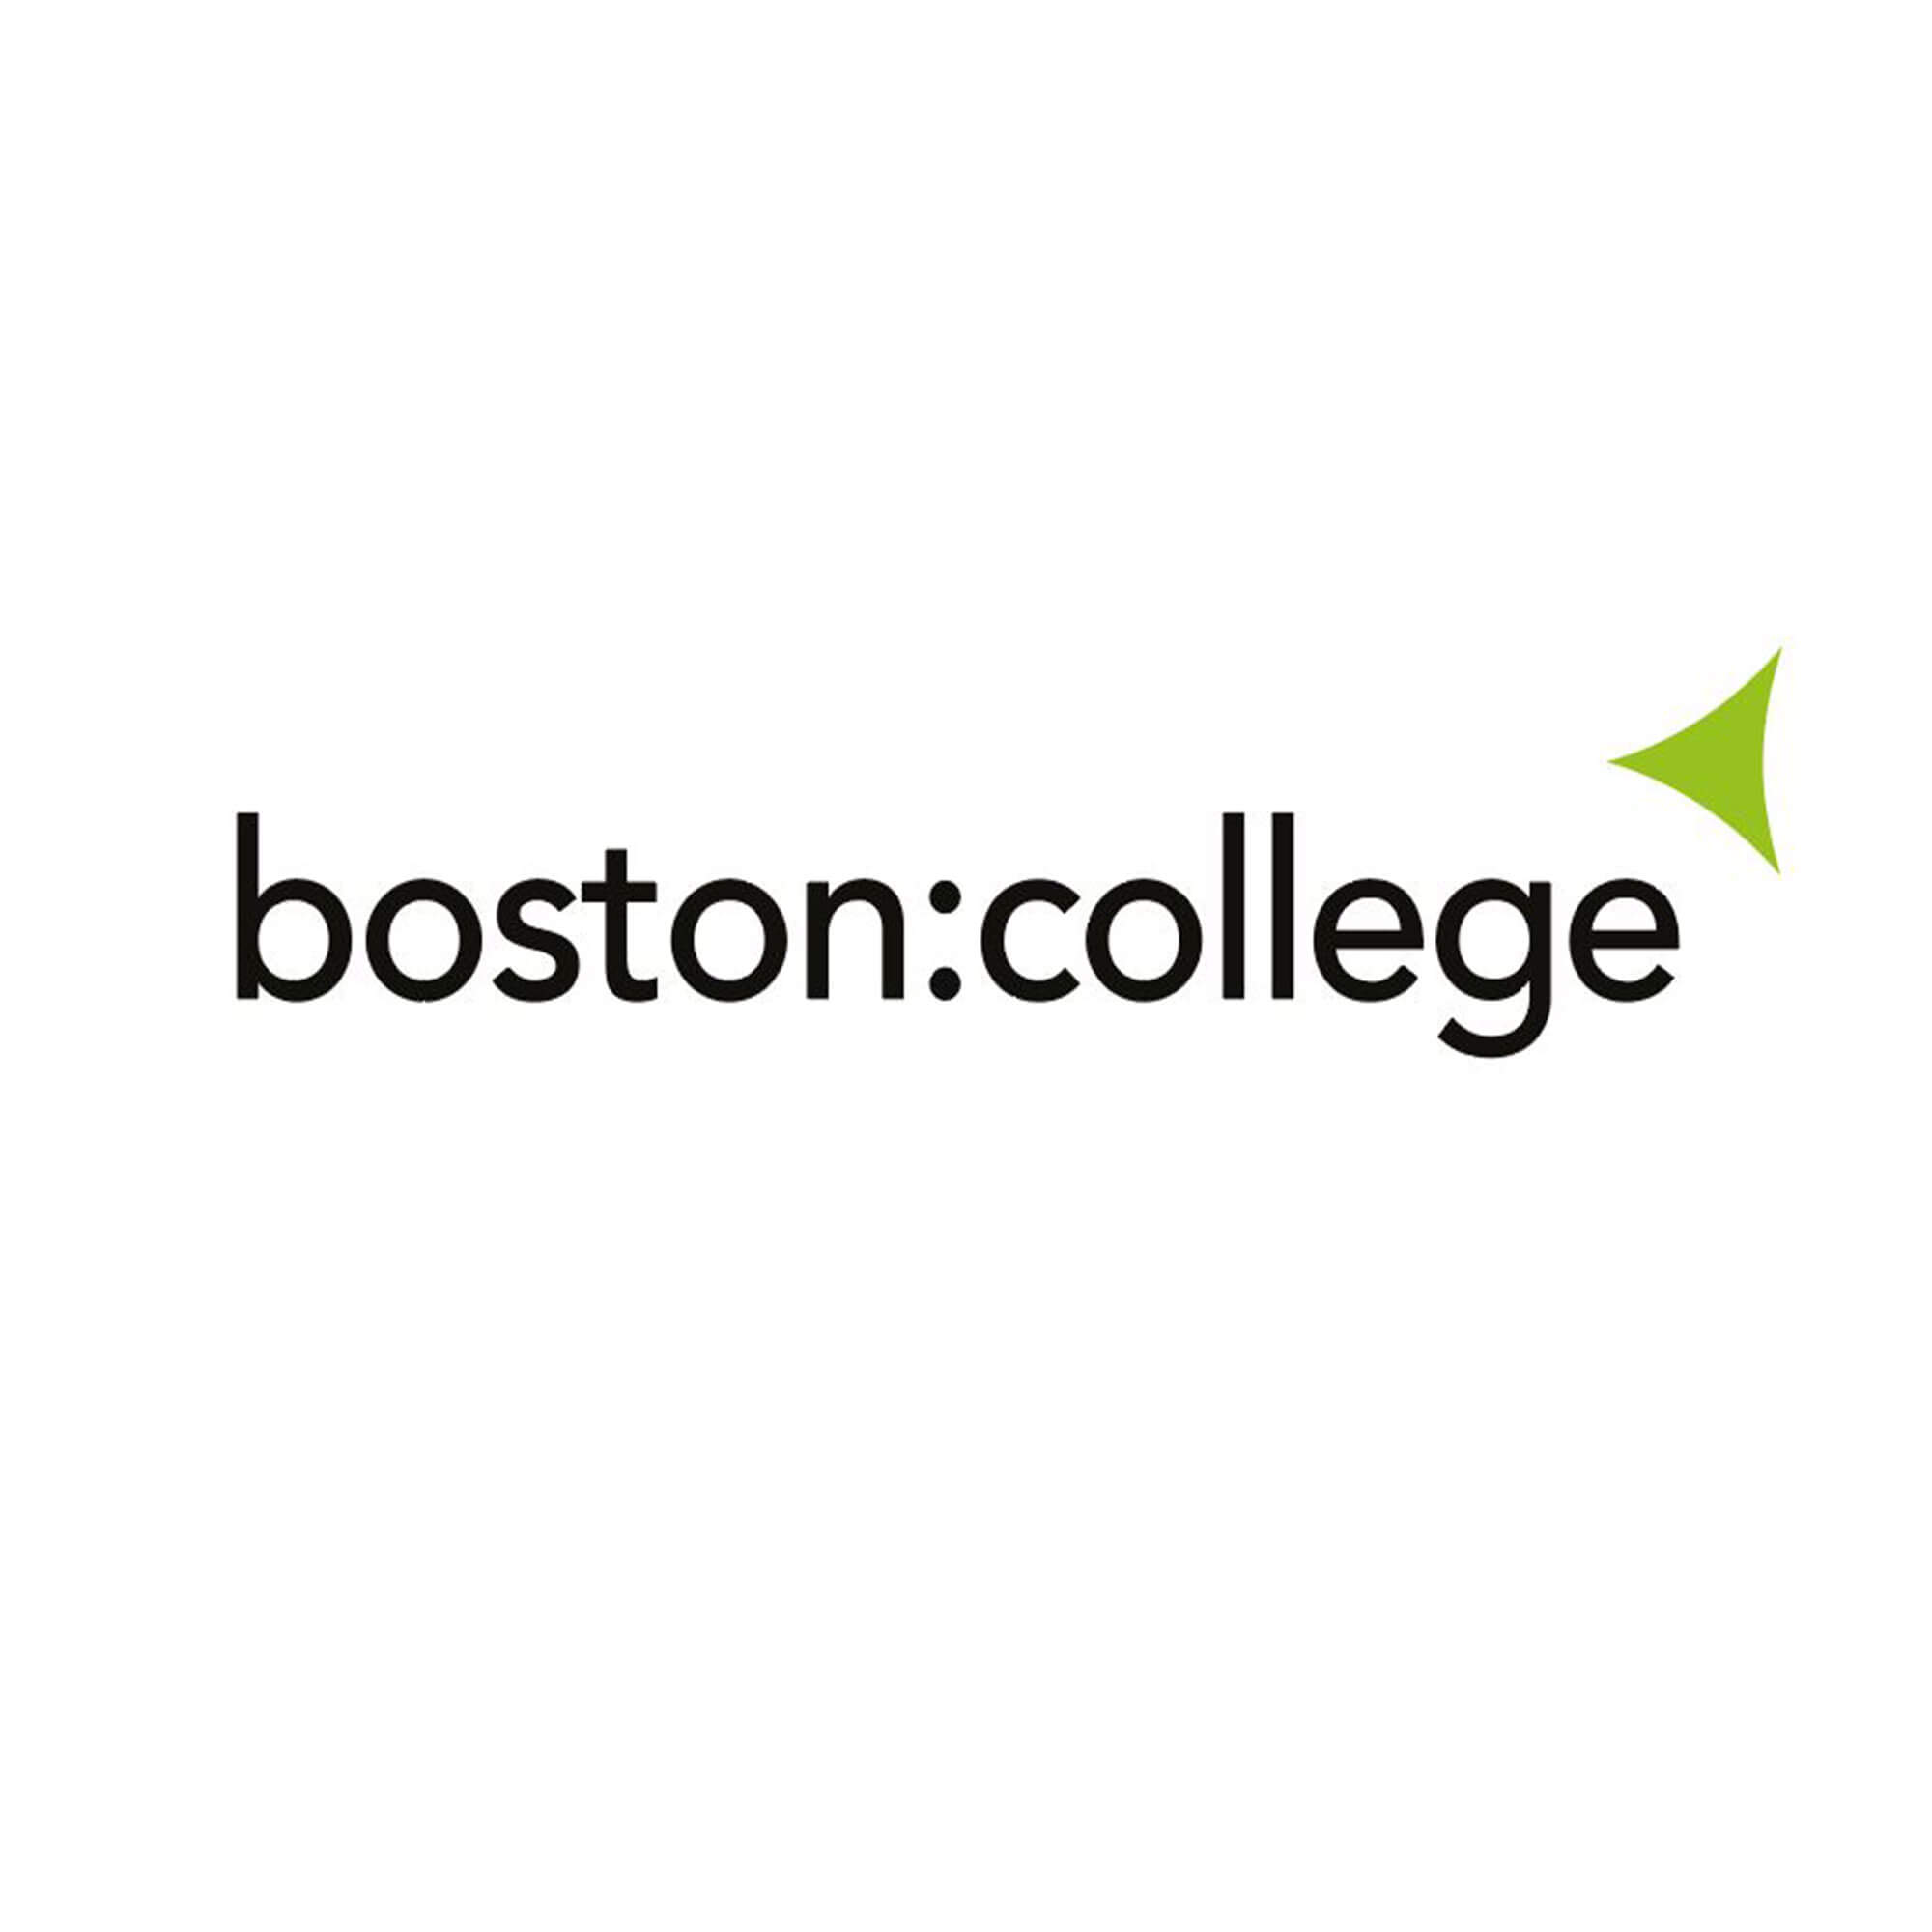 college logo in black with a green triangle above the e